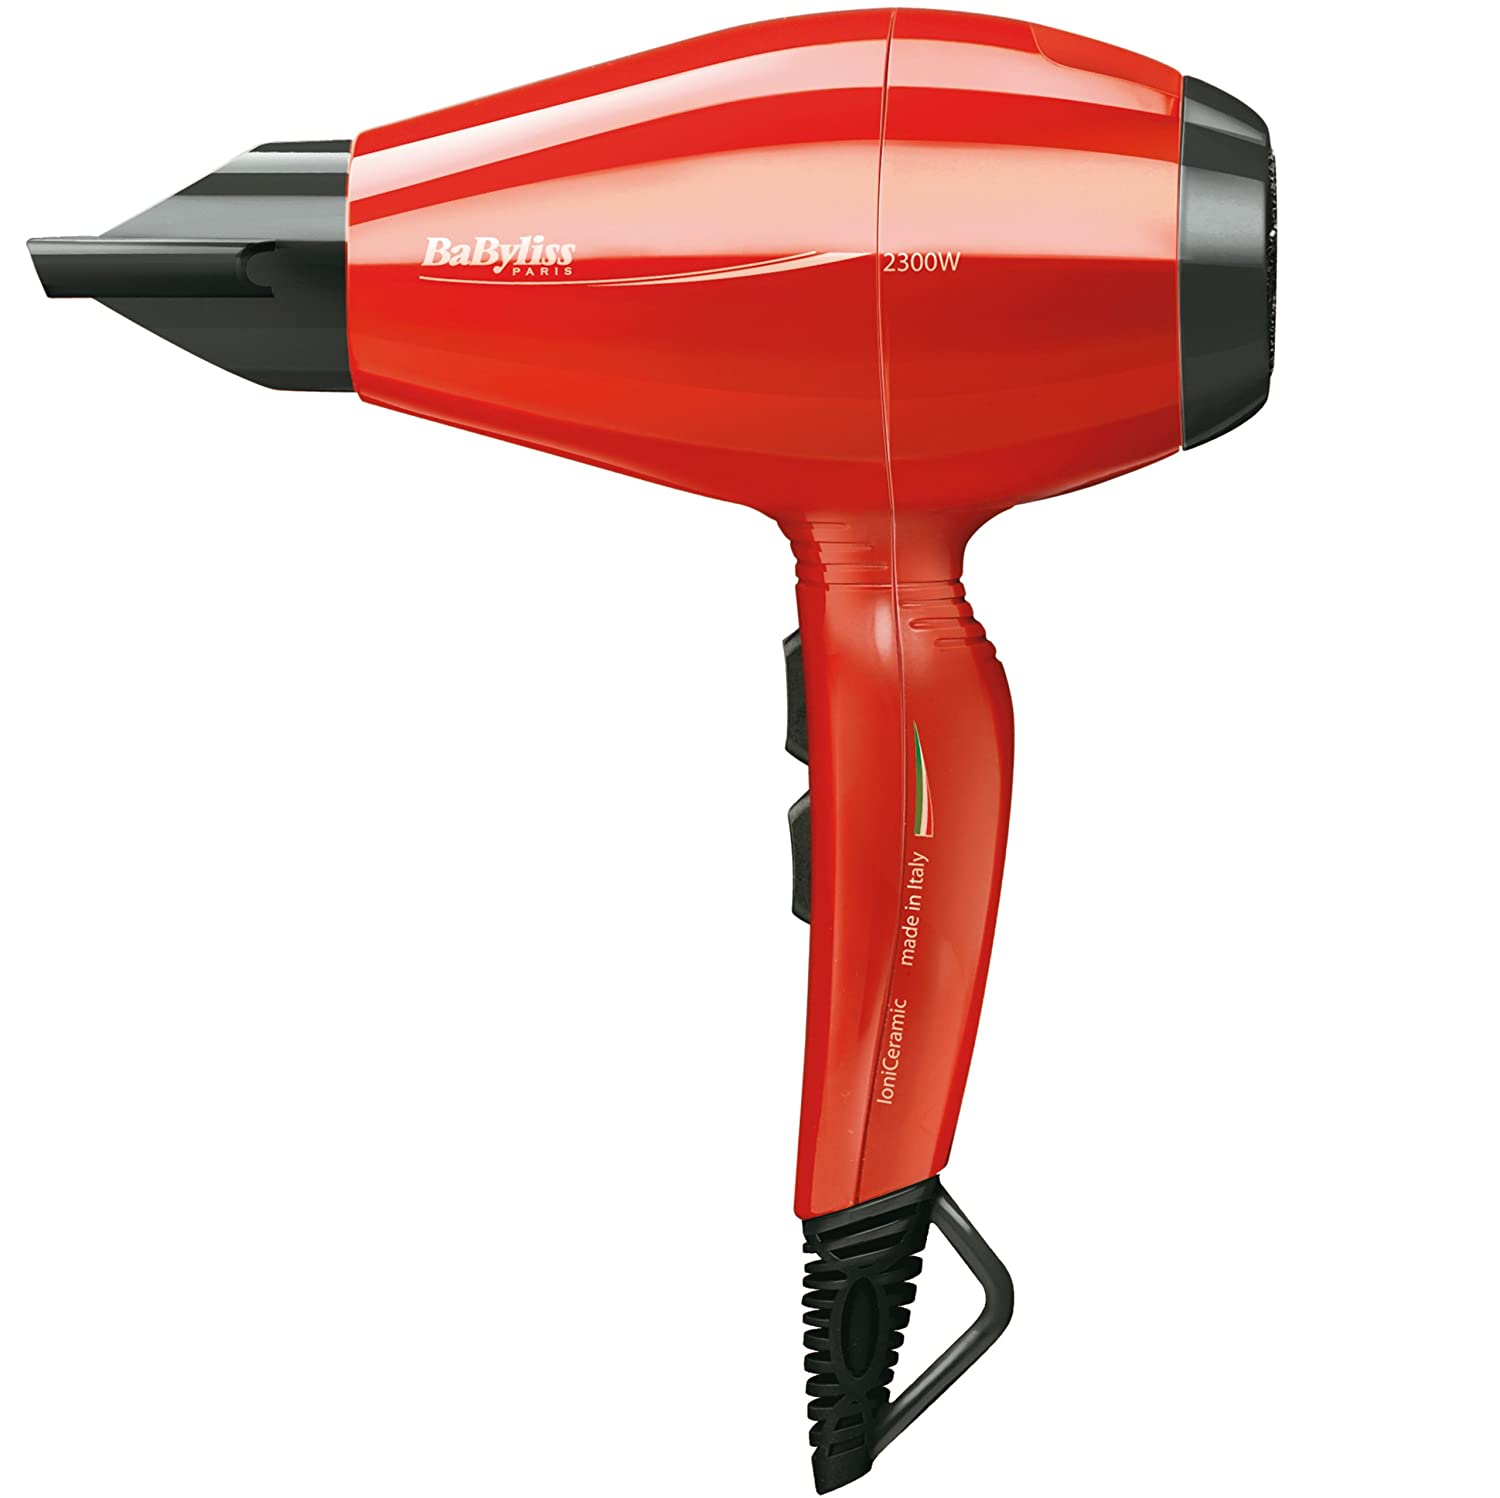 Babyliss Pro 6615E Hair Dryer